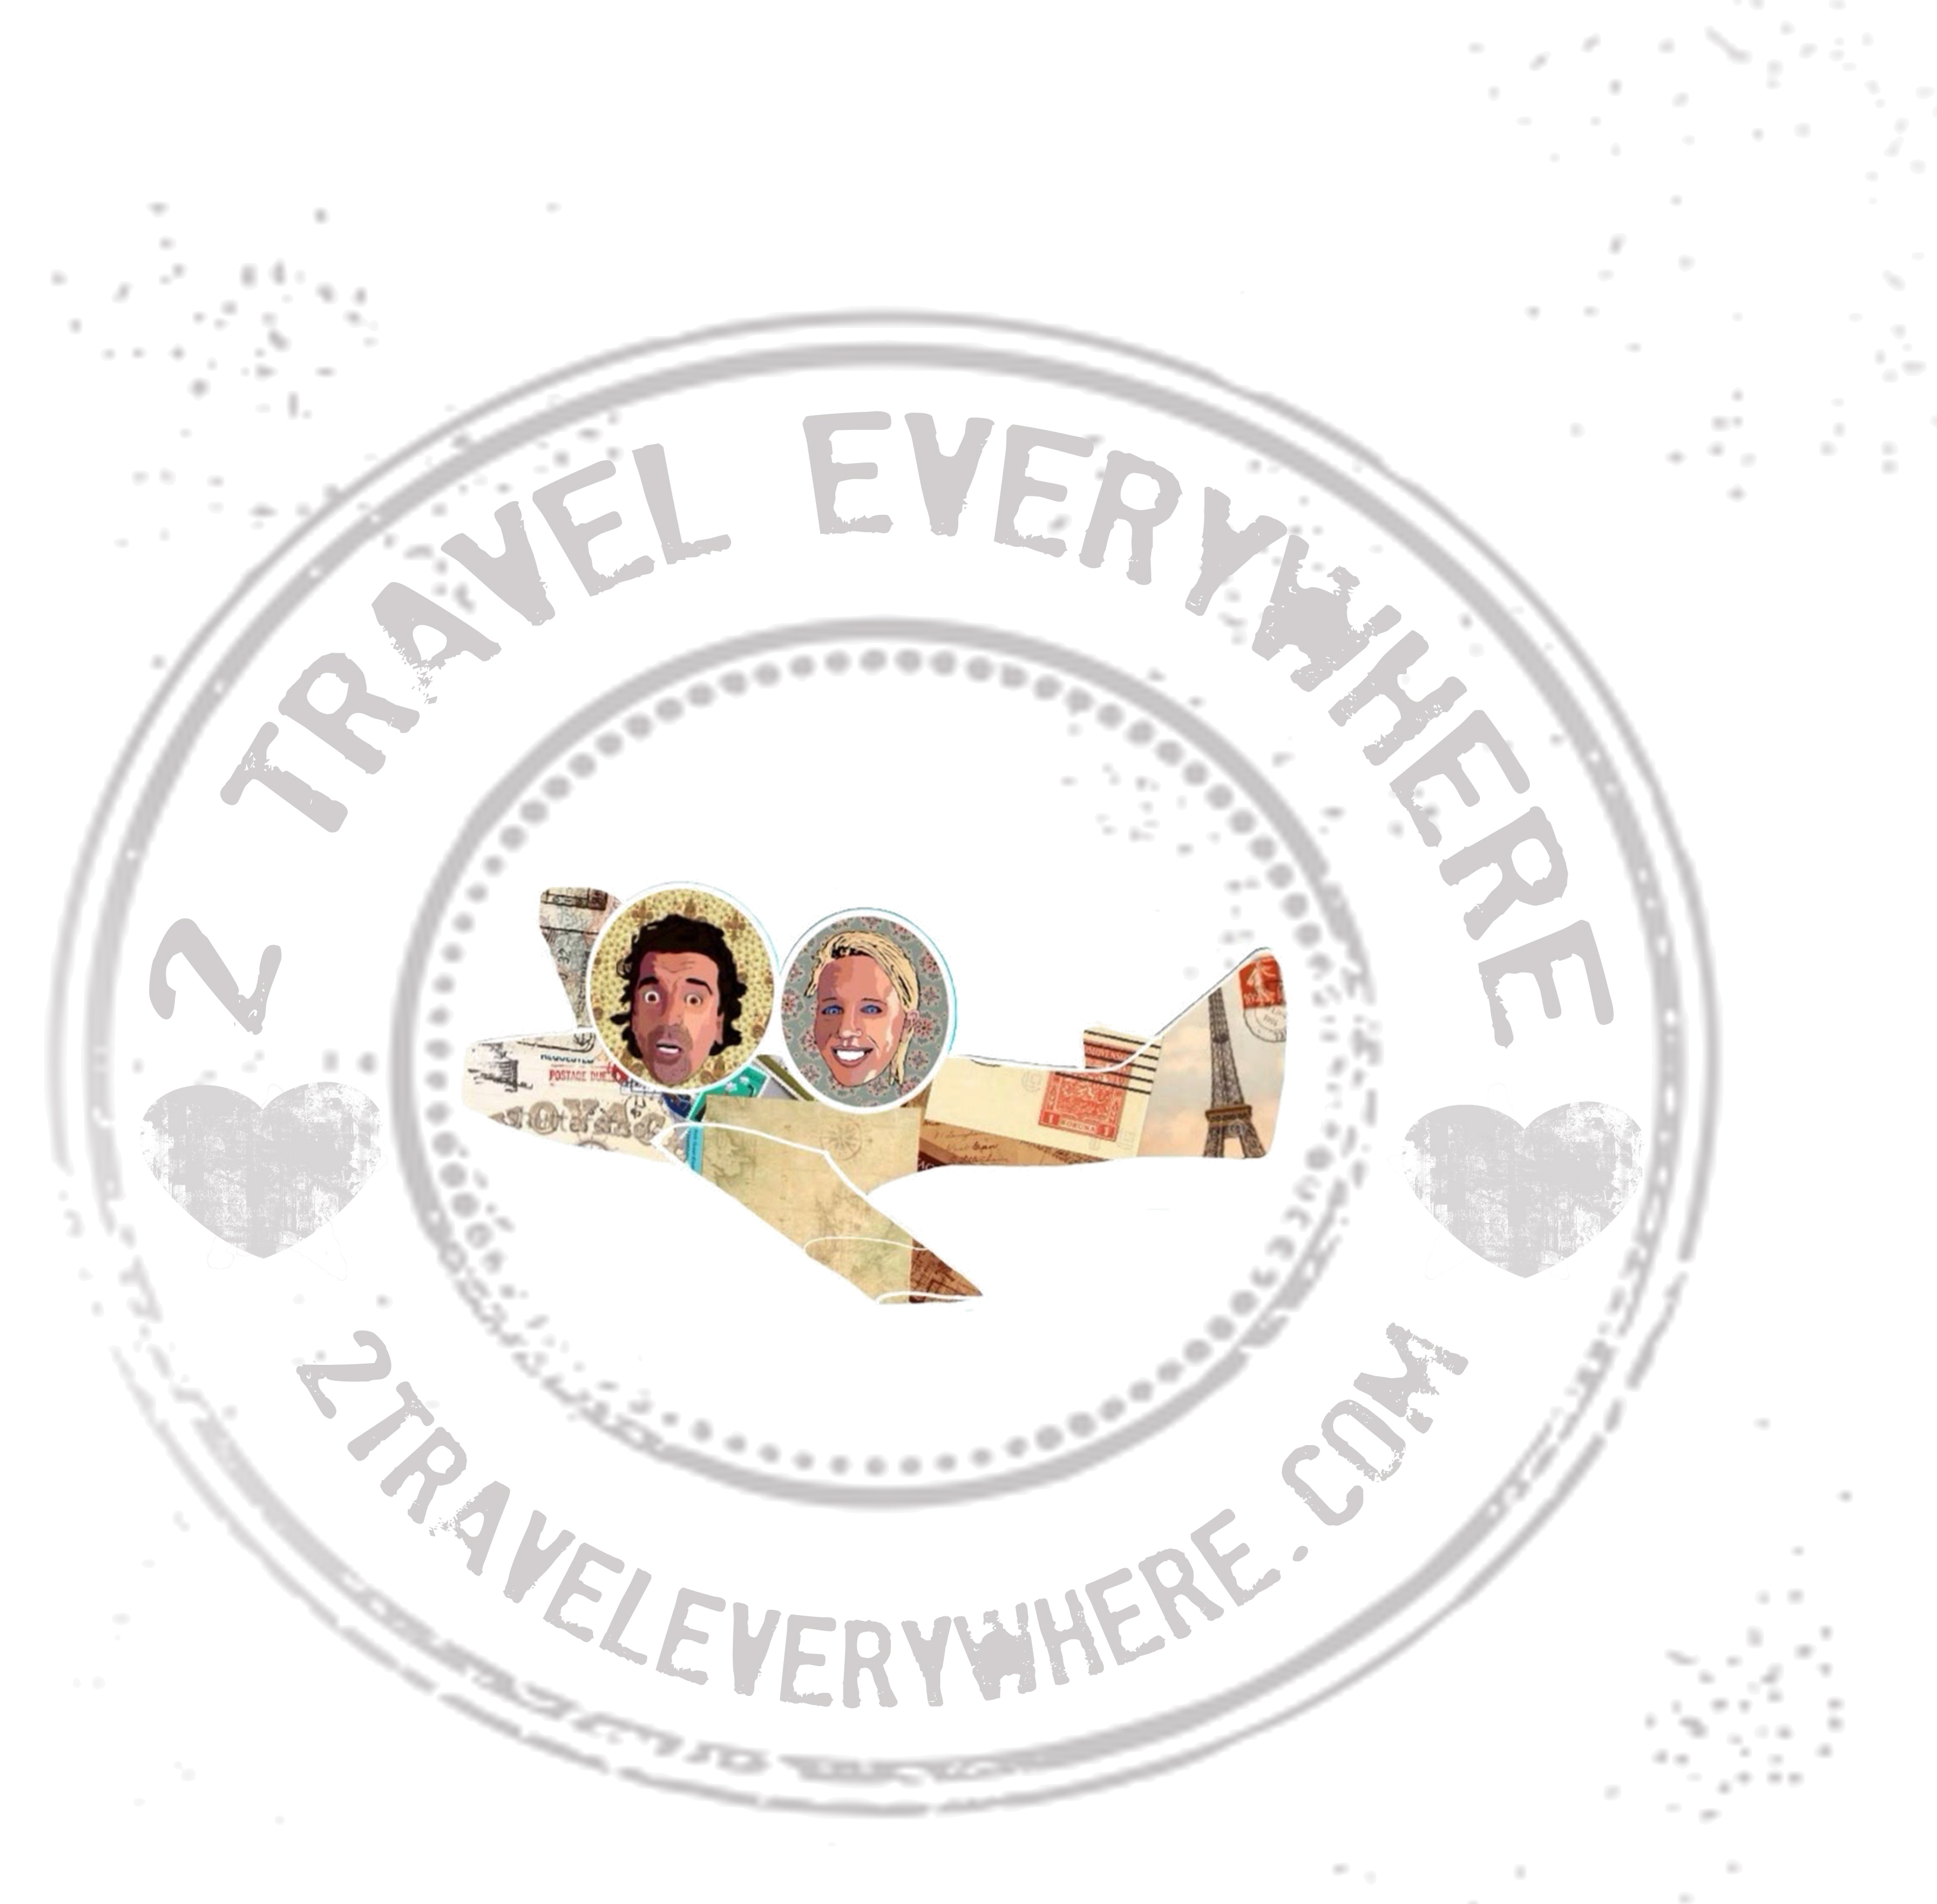 2 Travel Everywhere